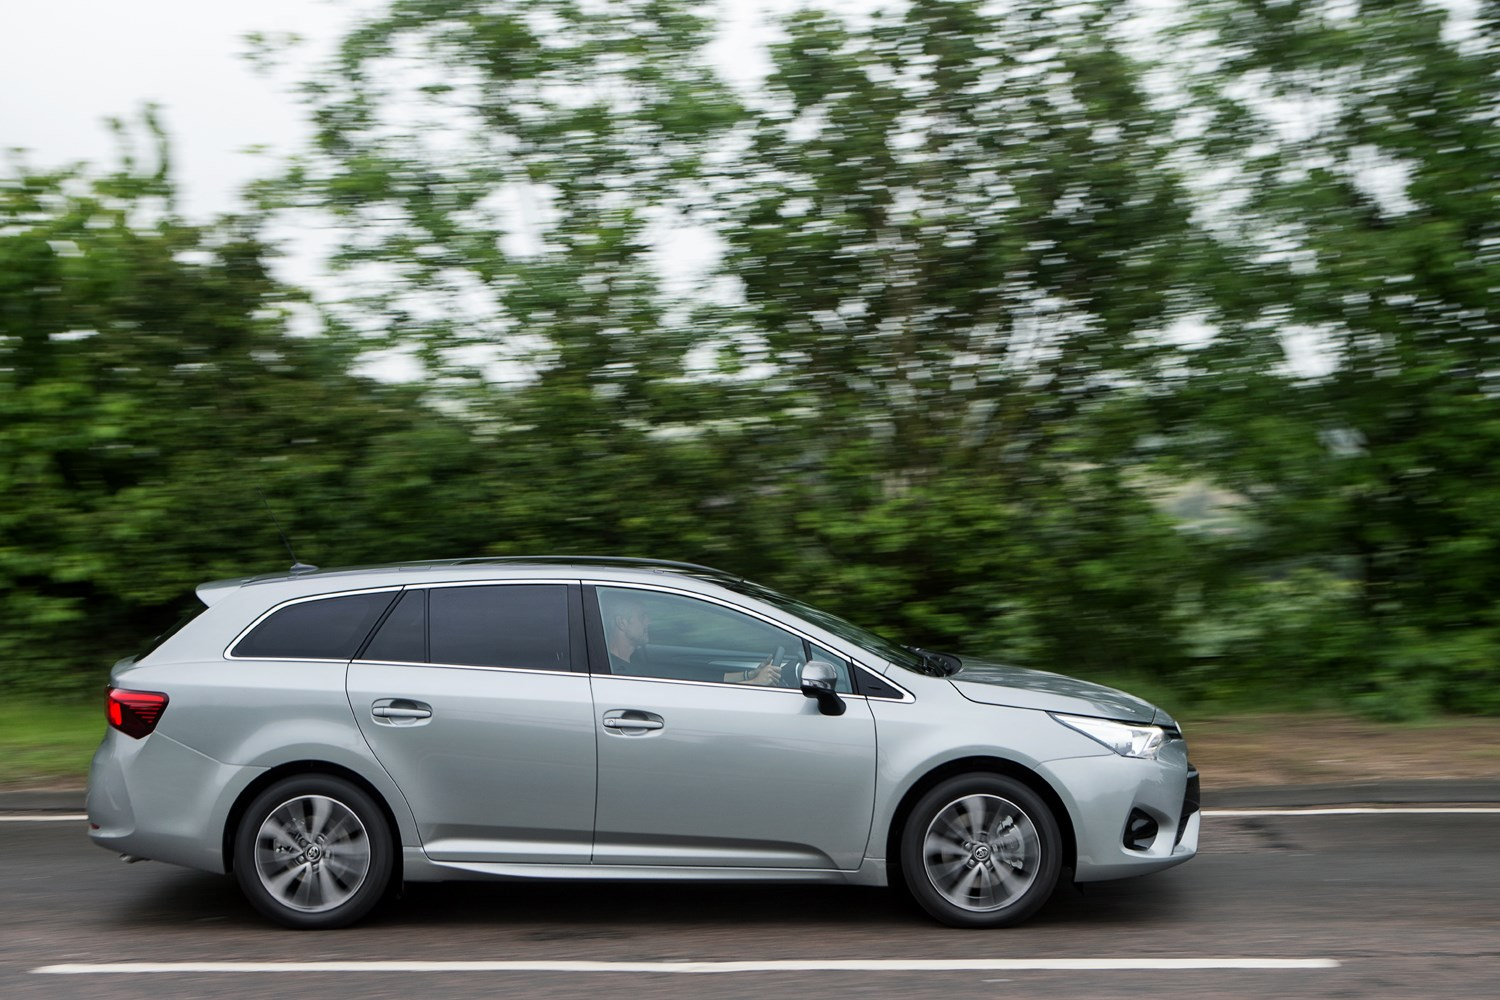 toyota avensis touring sports review 2015 parkers. Black Bedroom Furniture Sets. Home Design Ideas